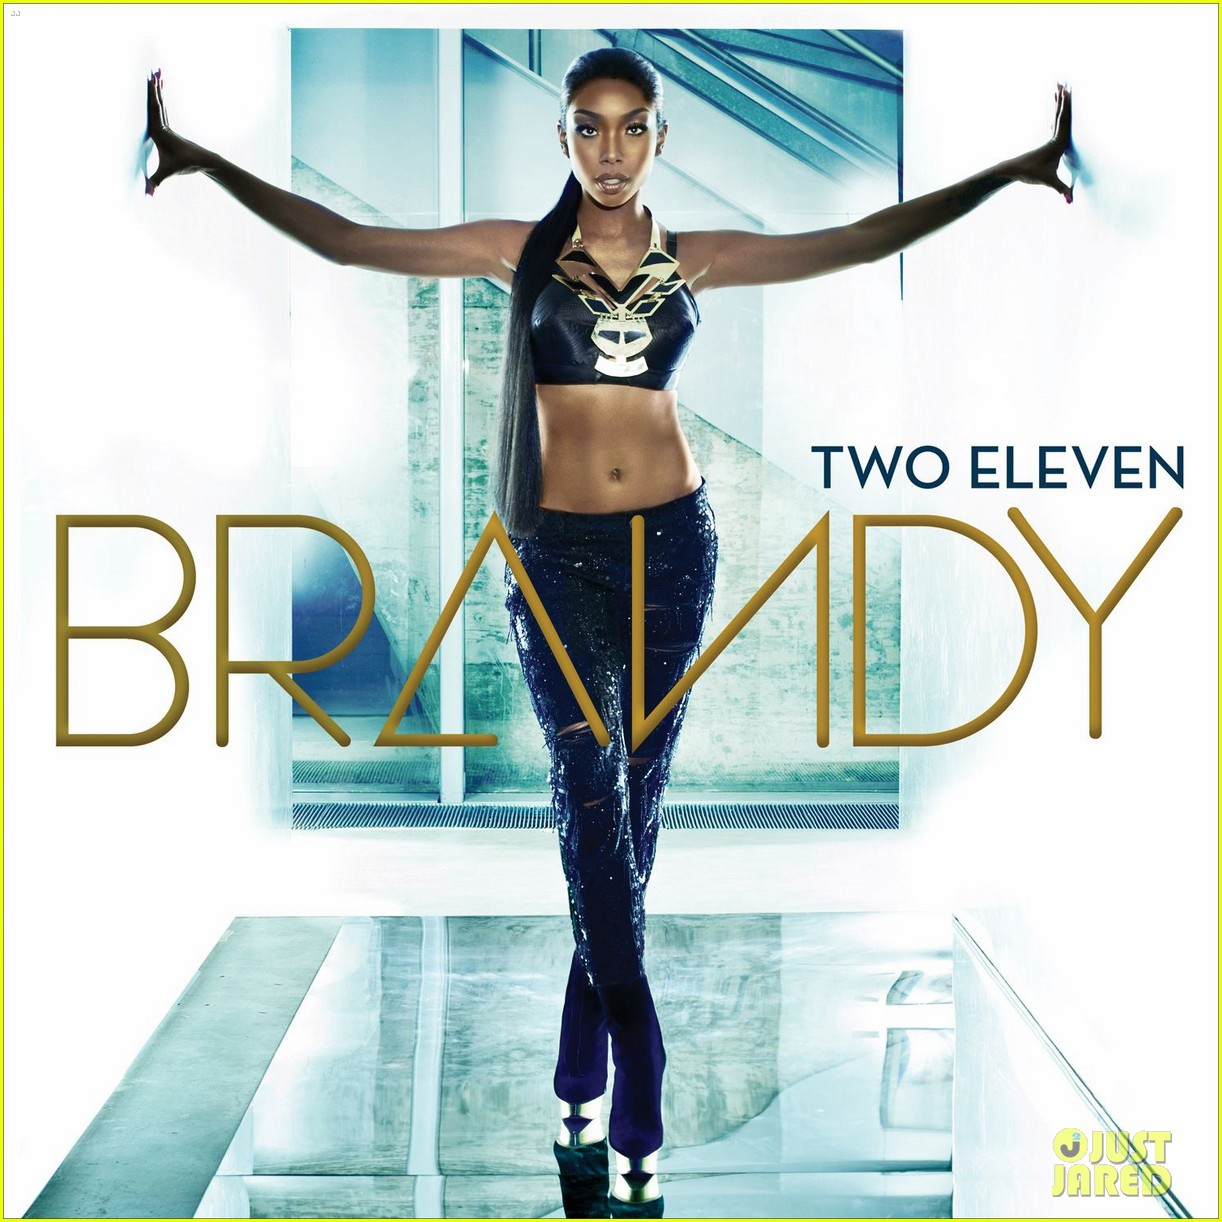 brandy two eleven album cover artwork revealed